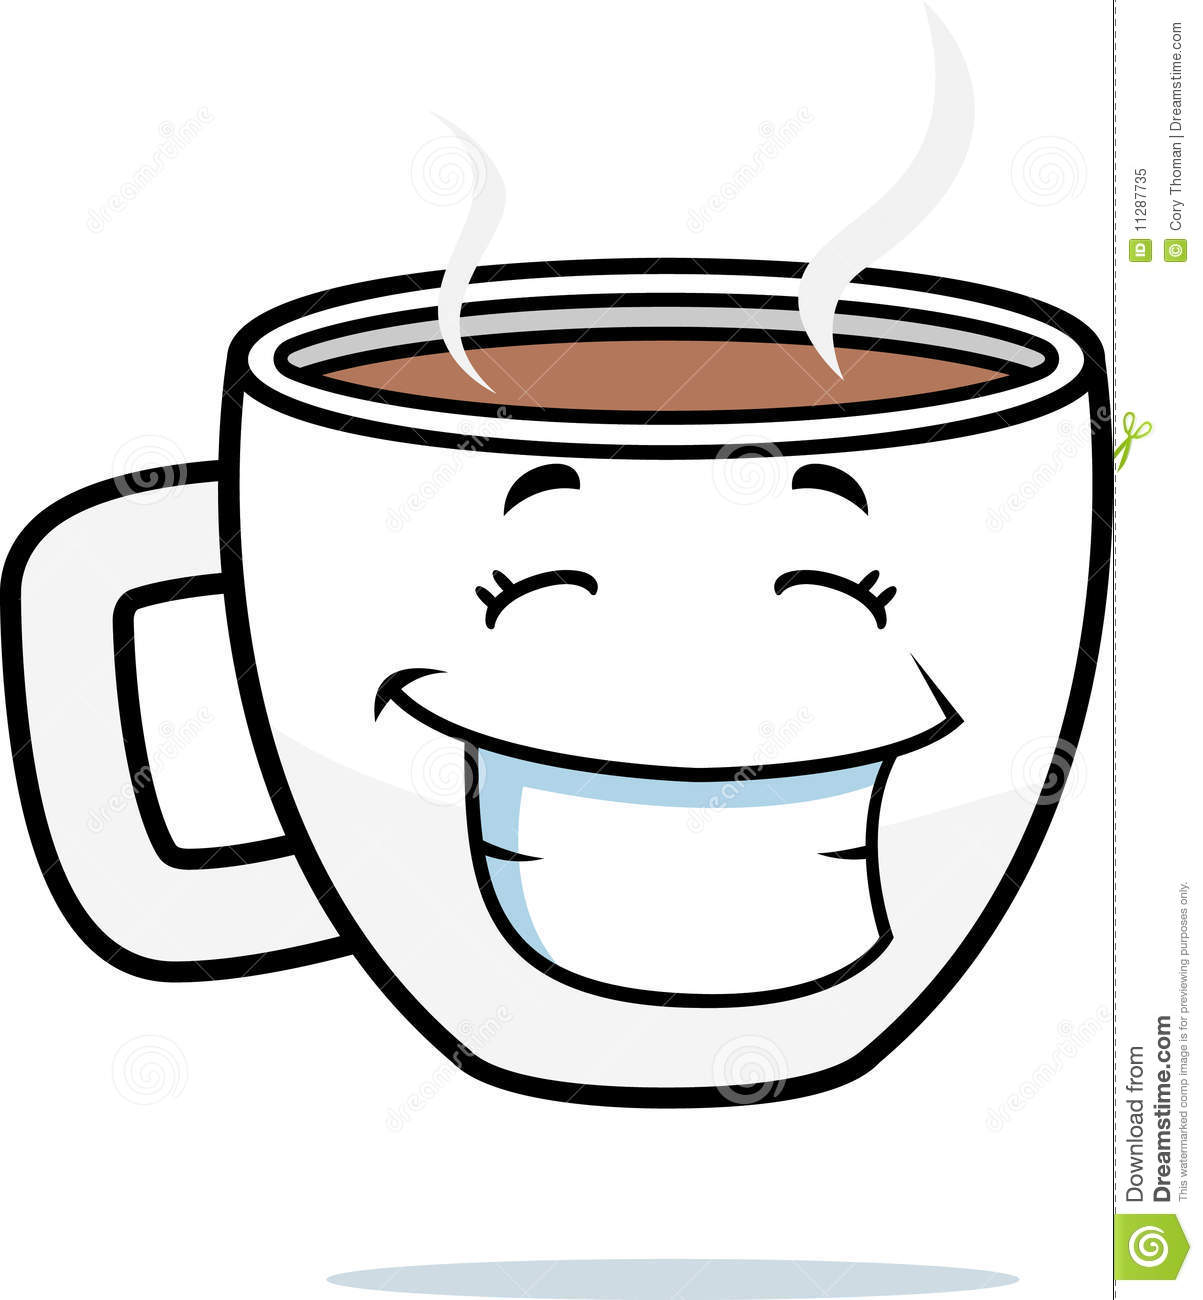 Coffee Smiling Royalty Free Stock Photo - Image: 11287735